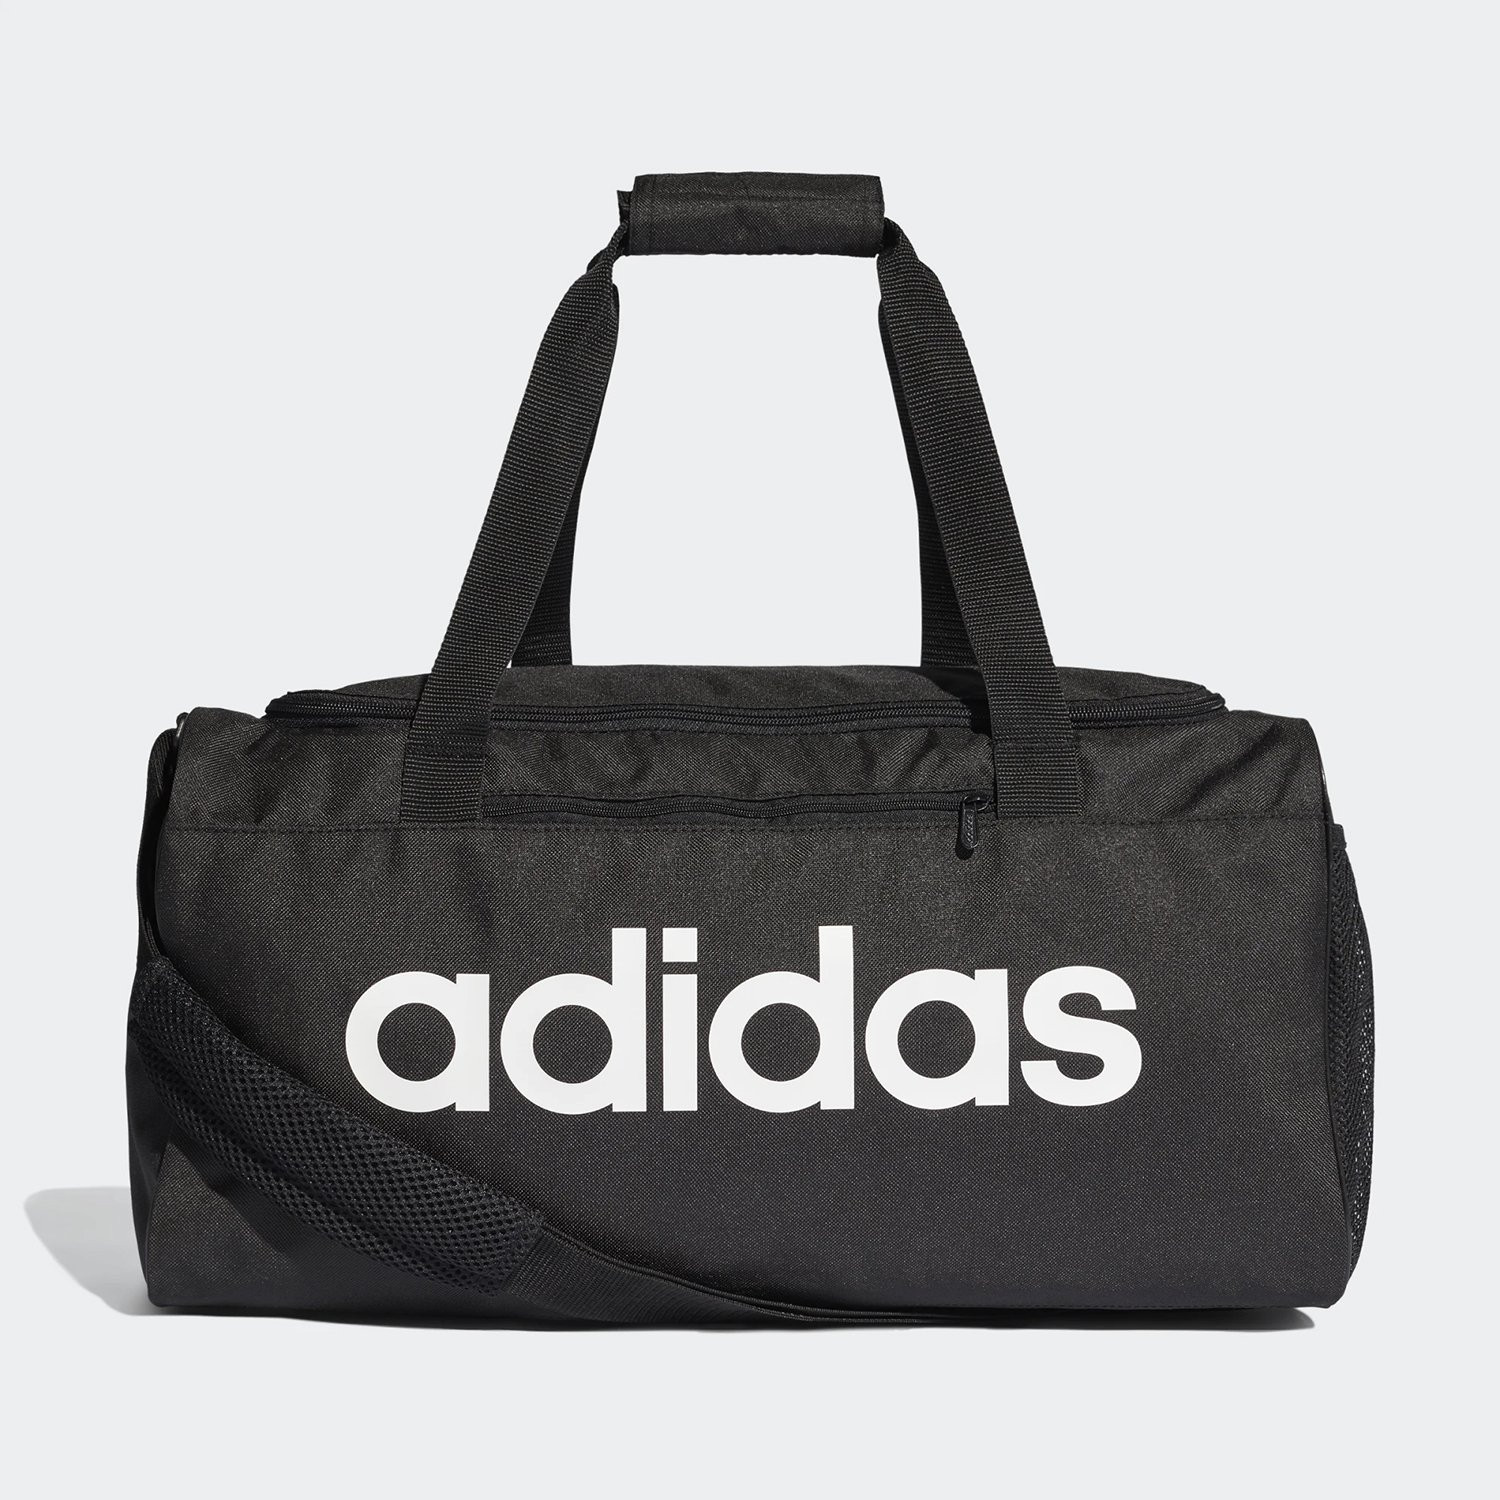 adidas Performance Linear Core Duffel Bag Small (9000032236_8516)